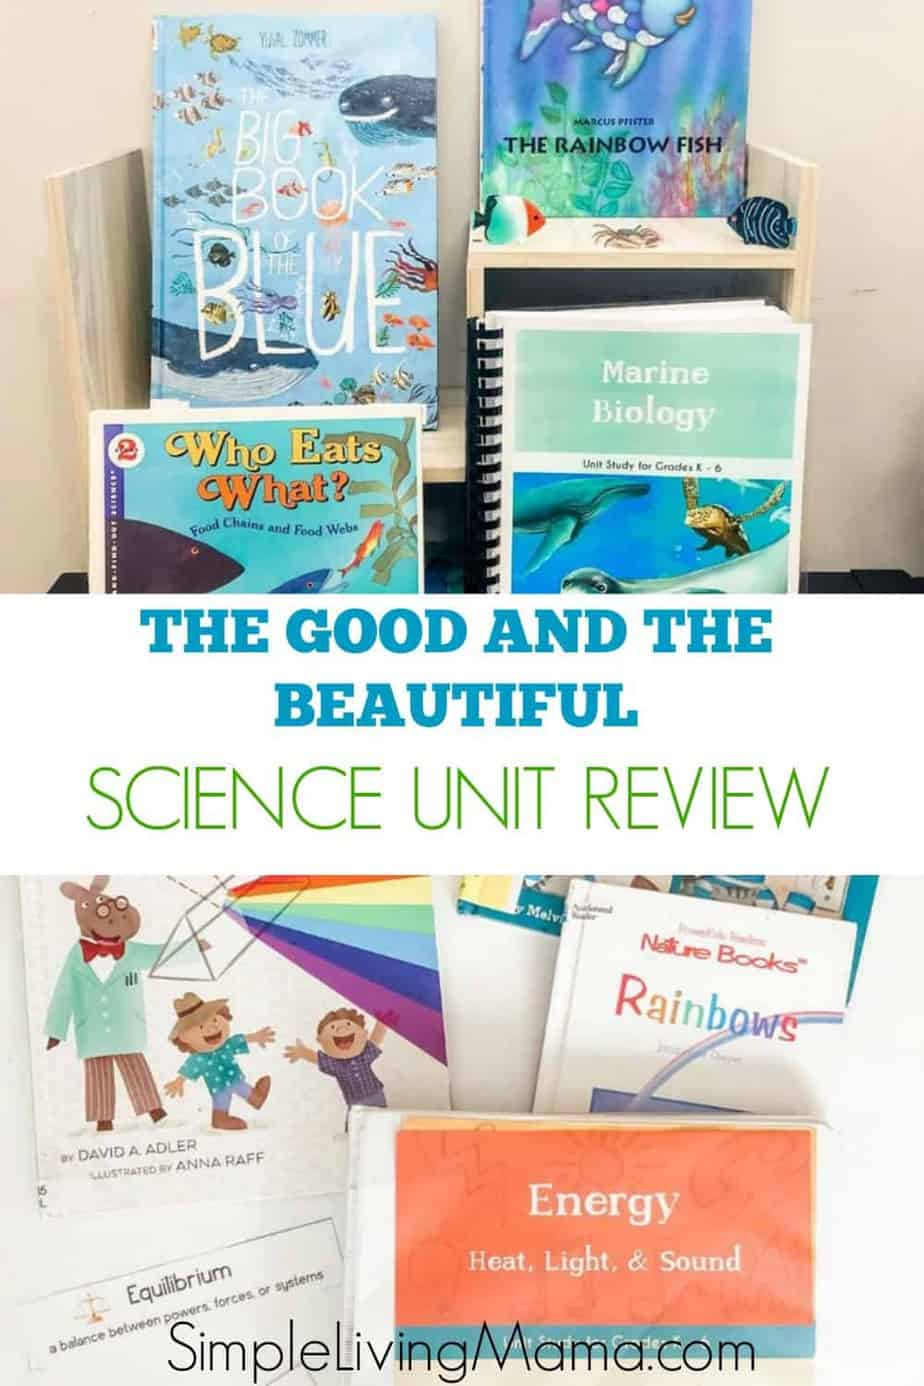 The Good and the Beautiful science units review, tips, and science wall ideas